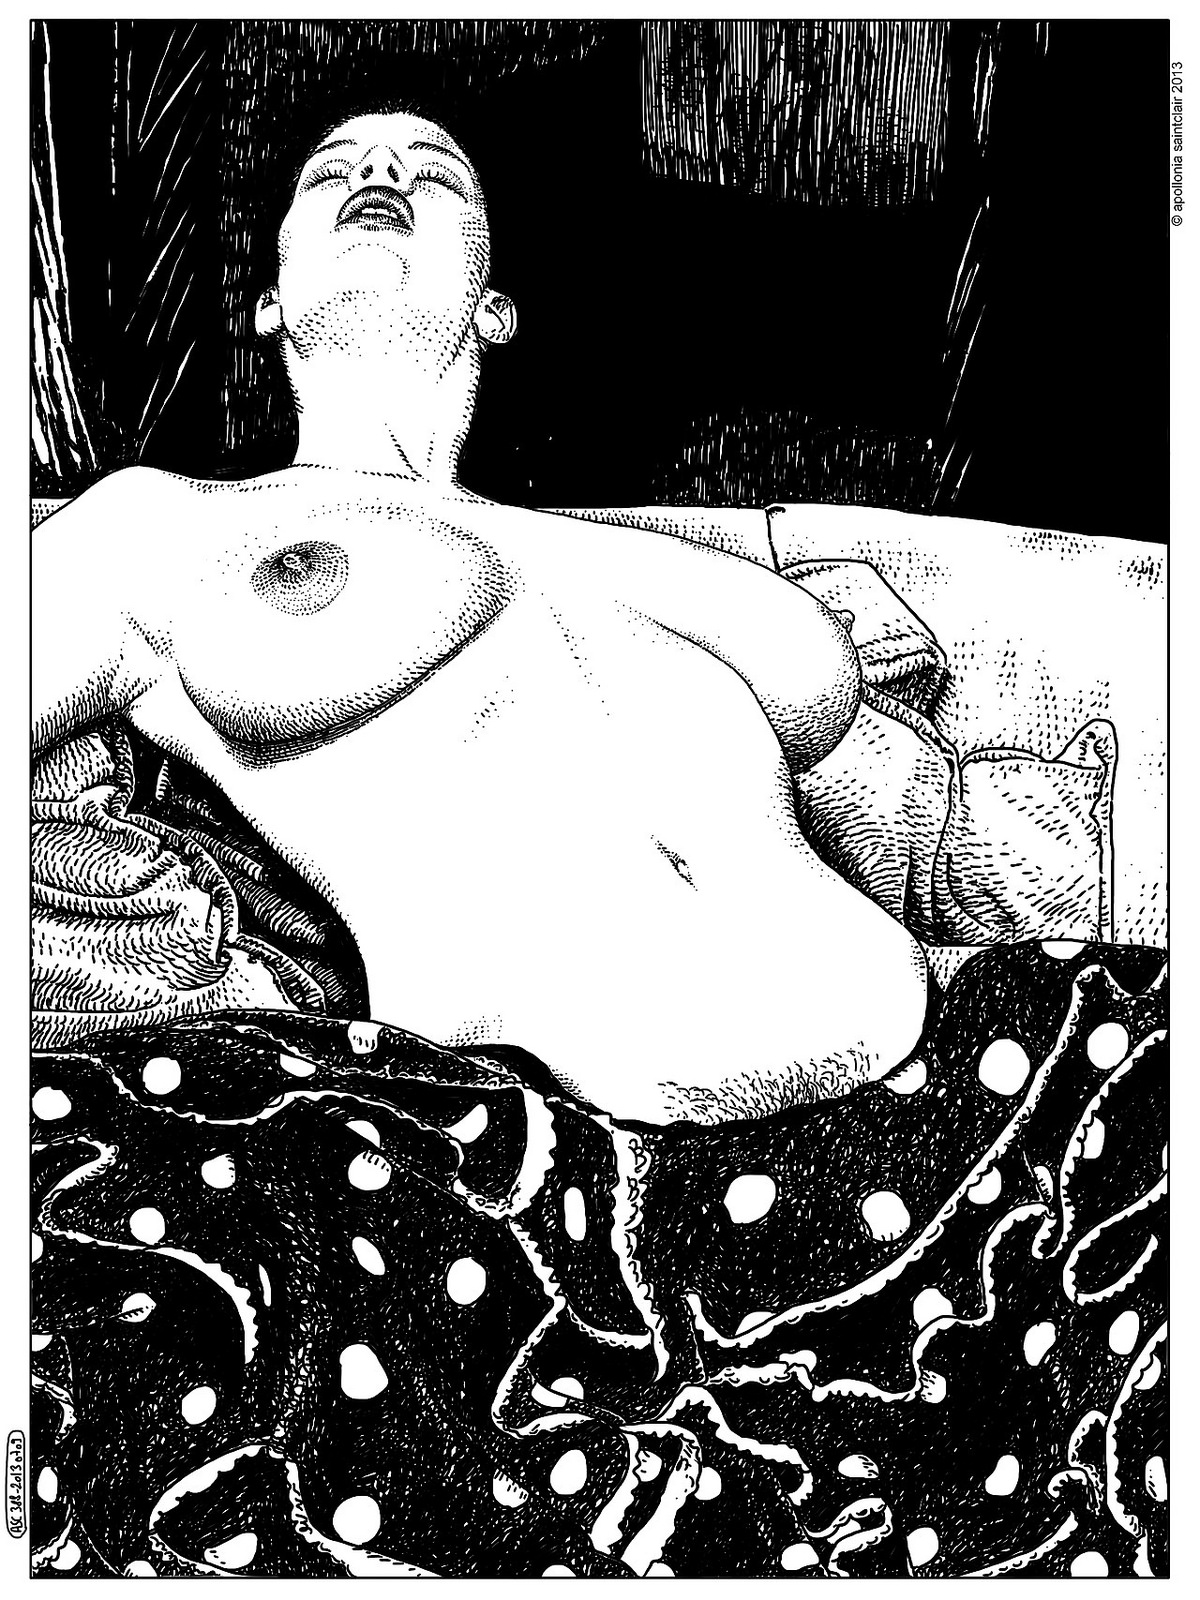 Apollonia Saintclair arte provocativo erotico 17